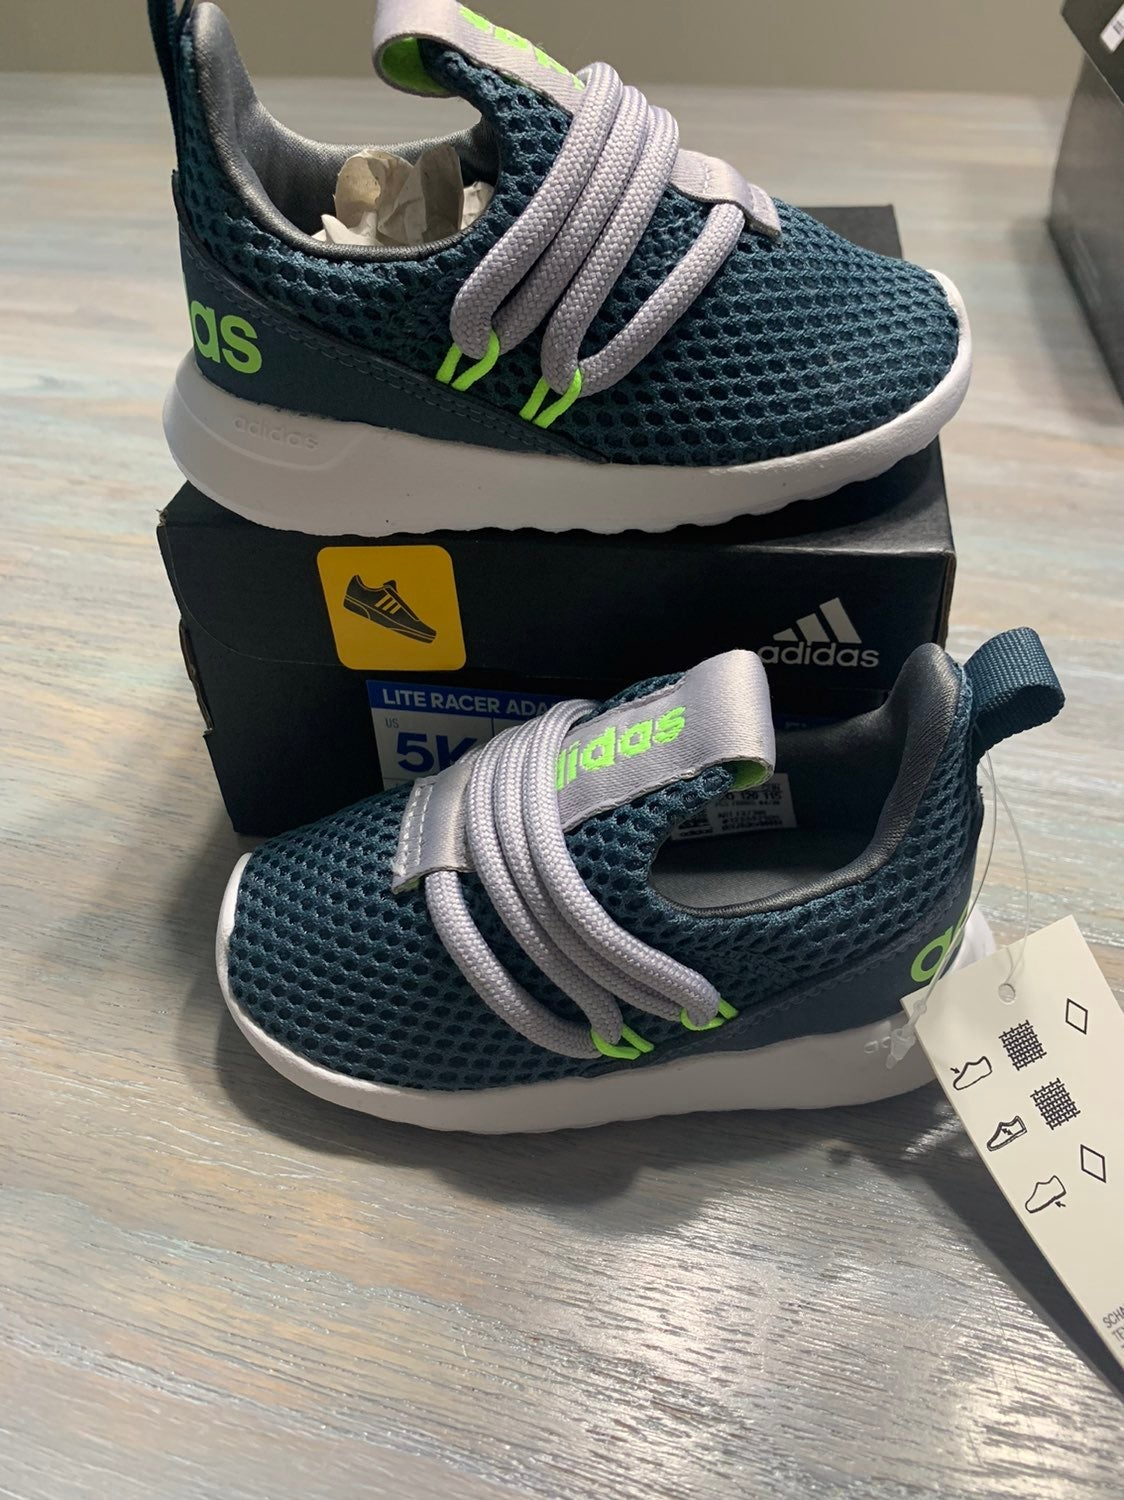 Adidas baby boys shoes new